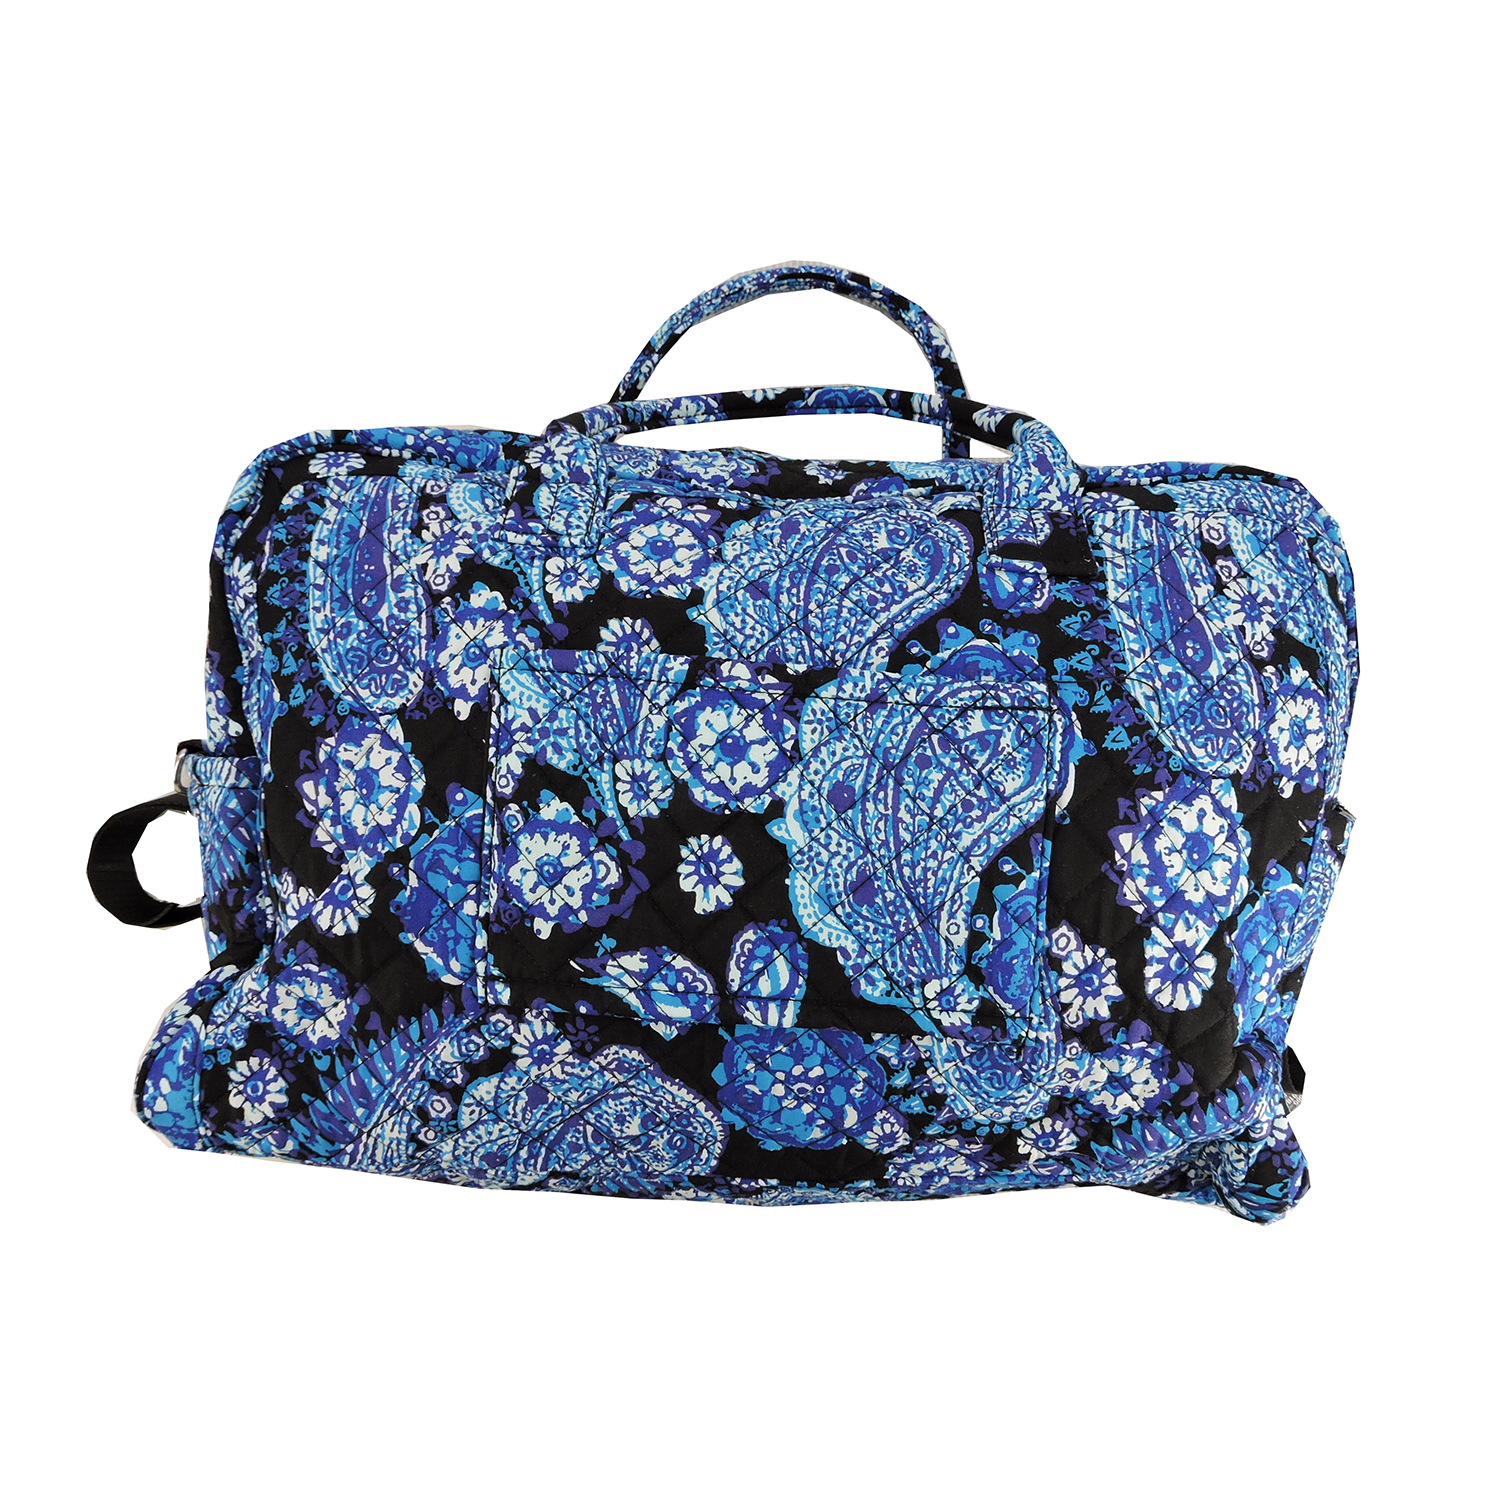 Member's Mark Quilted Travel Tote in Paisley Blue